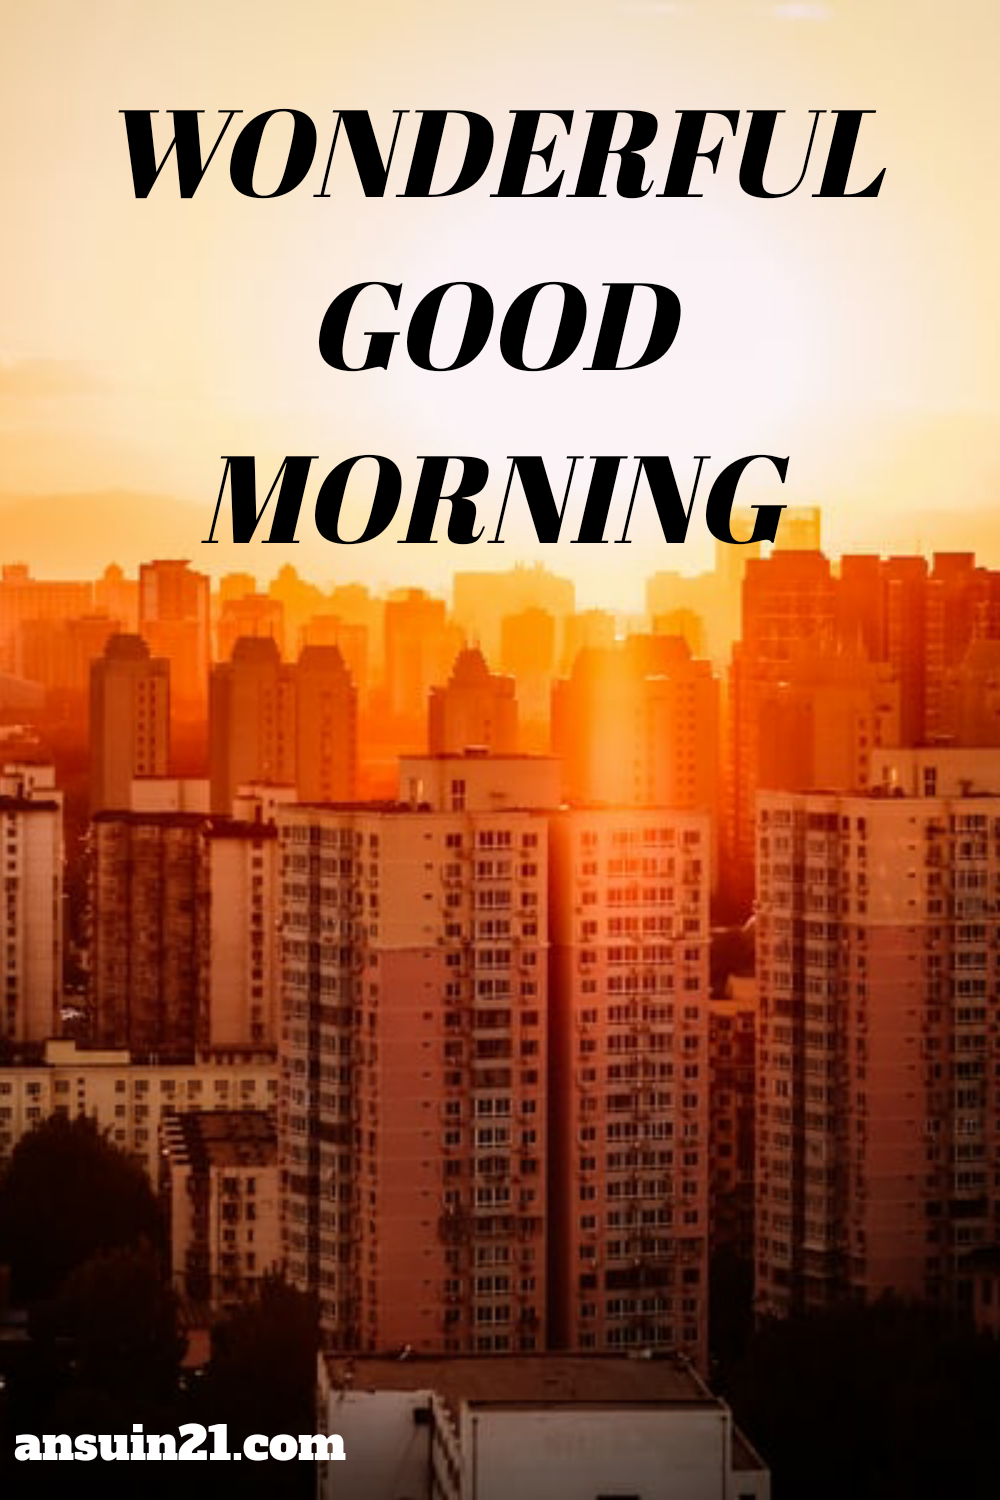 Best Good Morning HD Images, Wishes, Status for whatsaap HD Wallpaper free download,